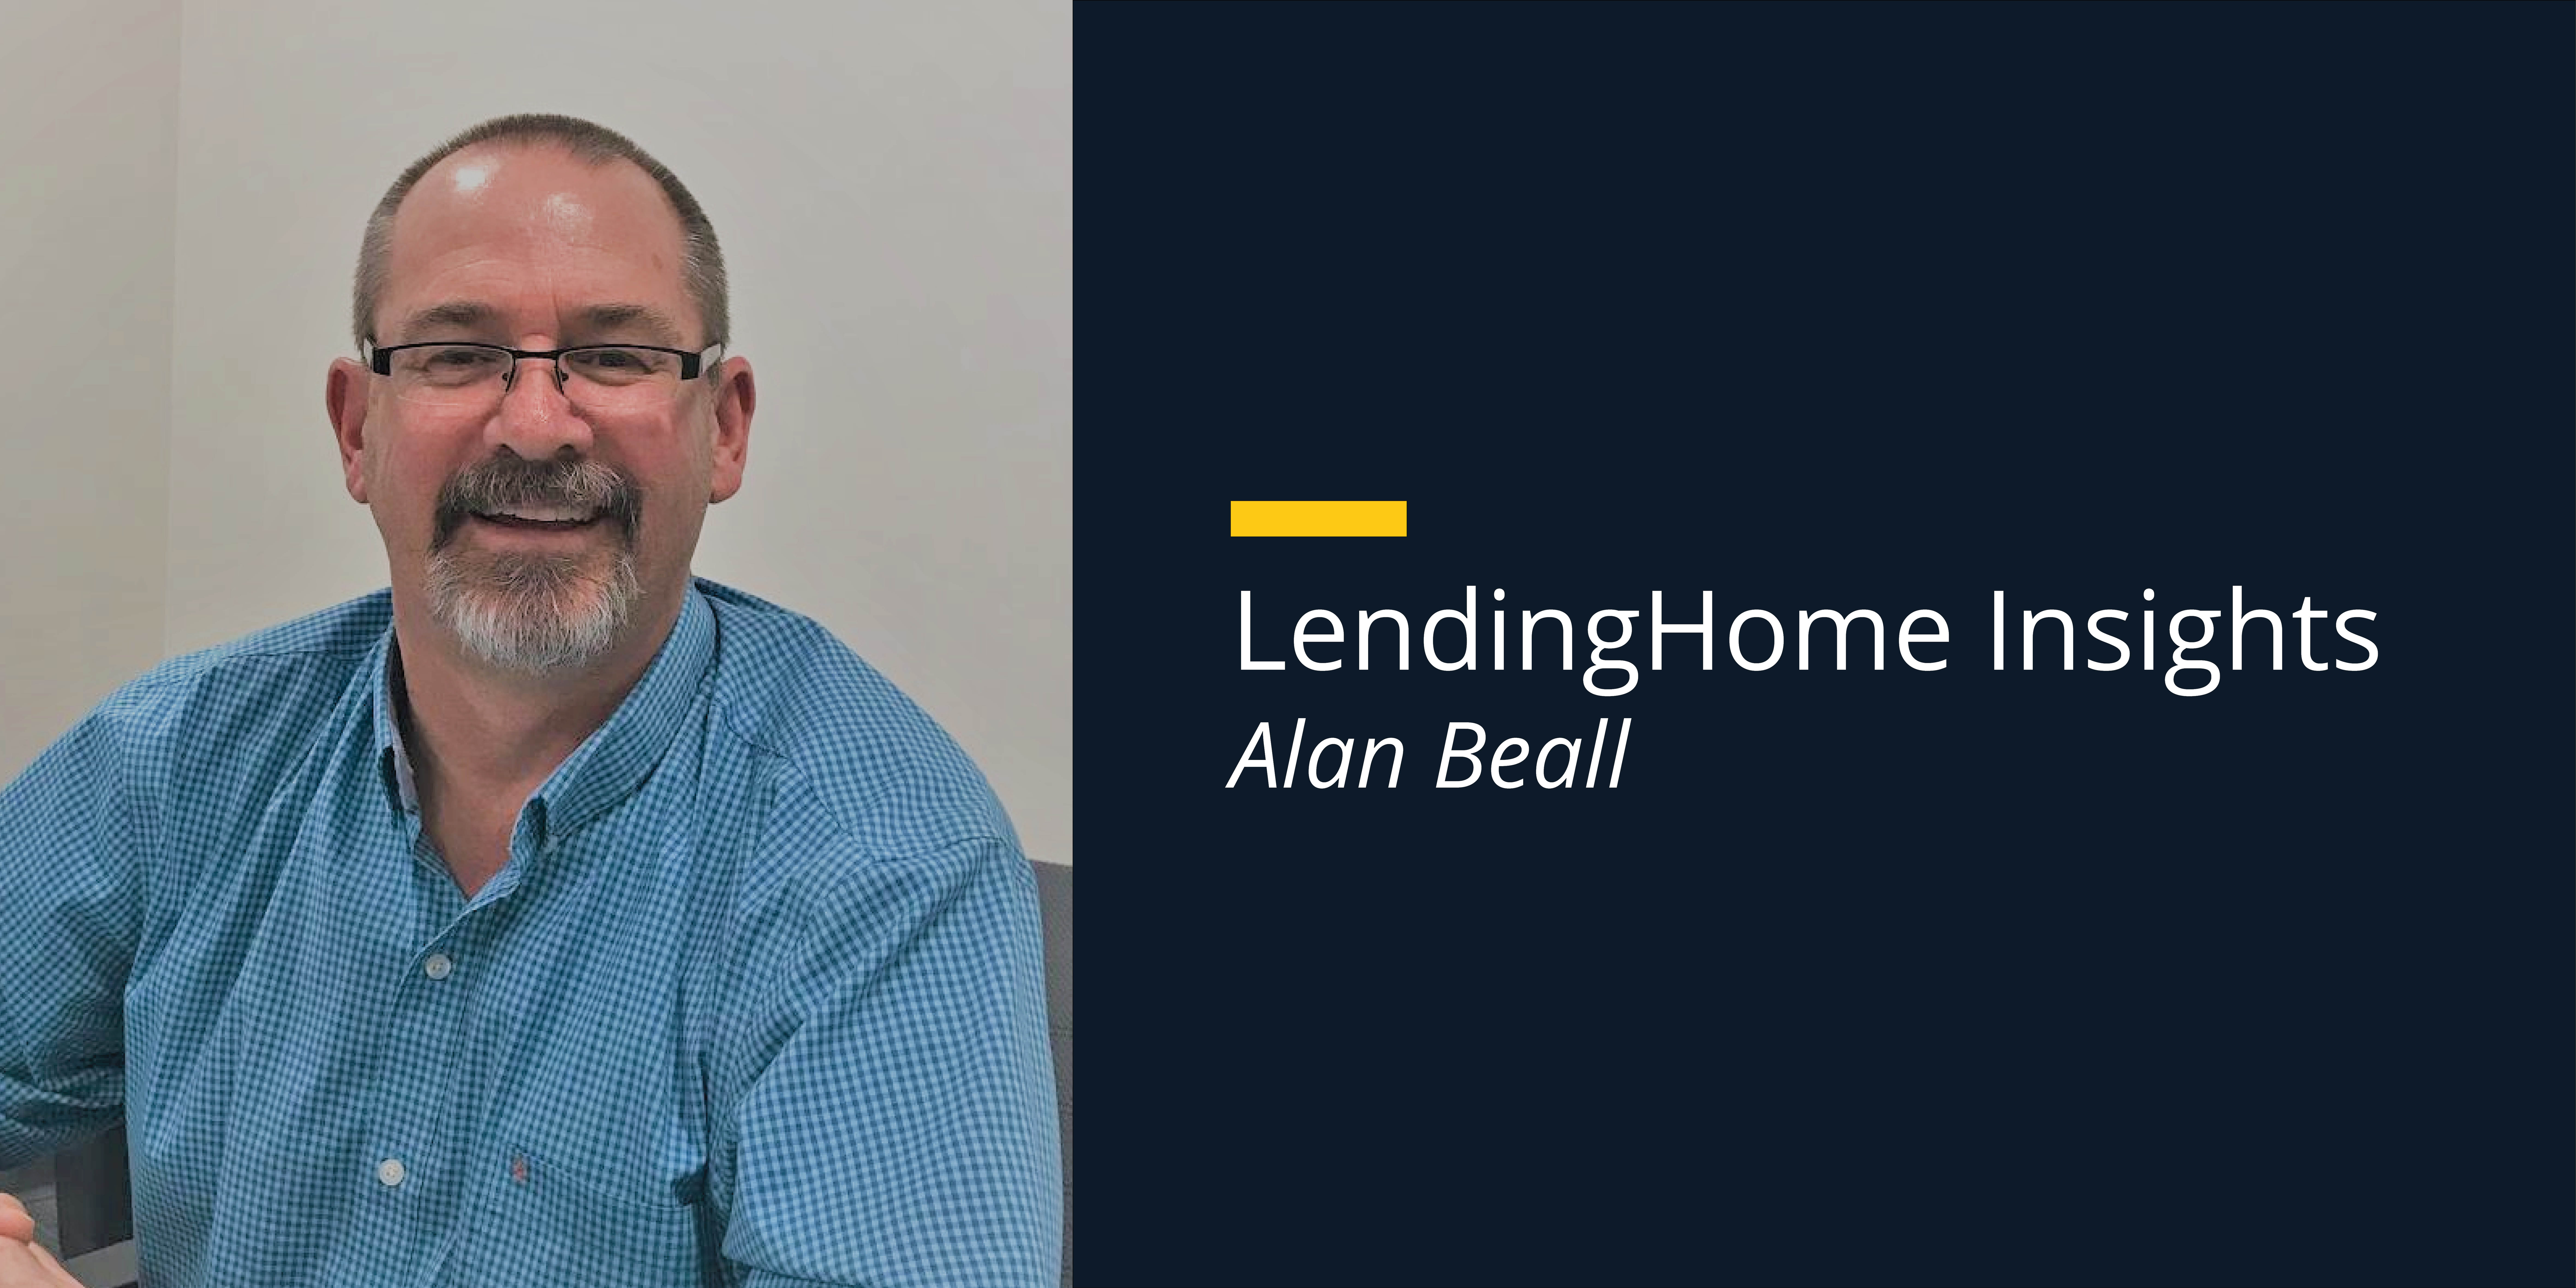 Praising the Appraiser: How Alan Beall's Experience Adds to the LendingHome Team